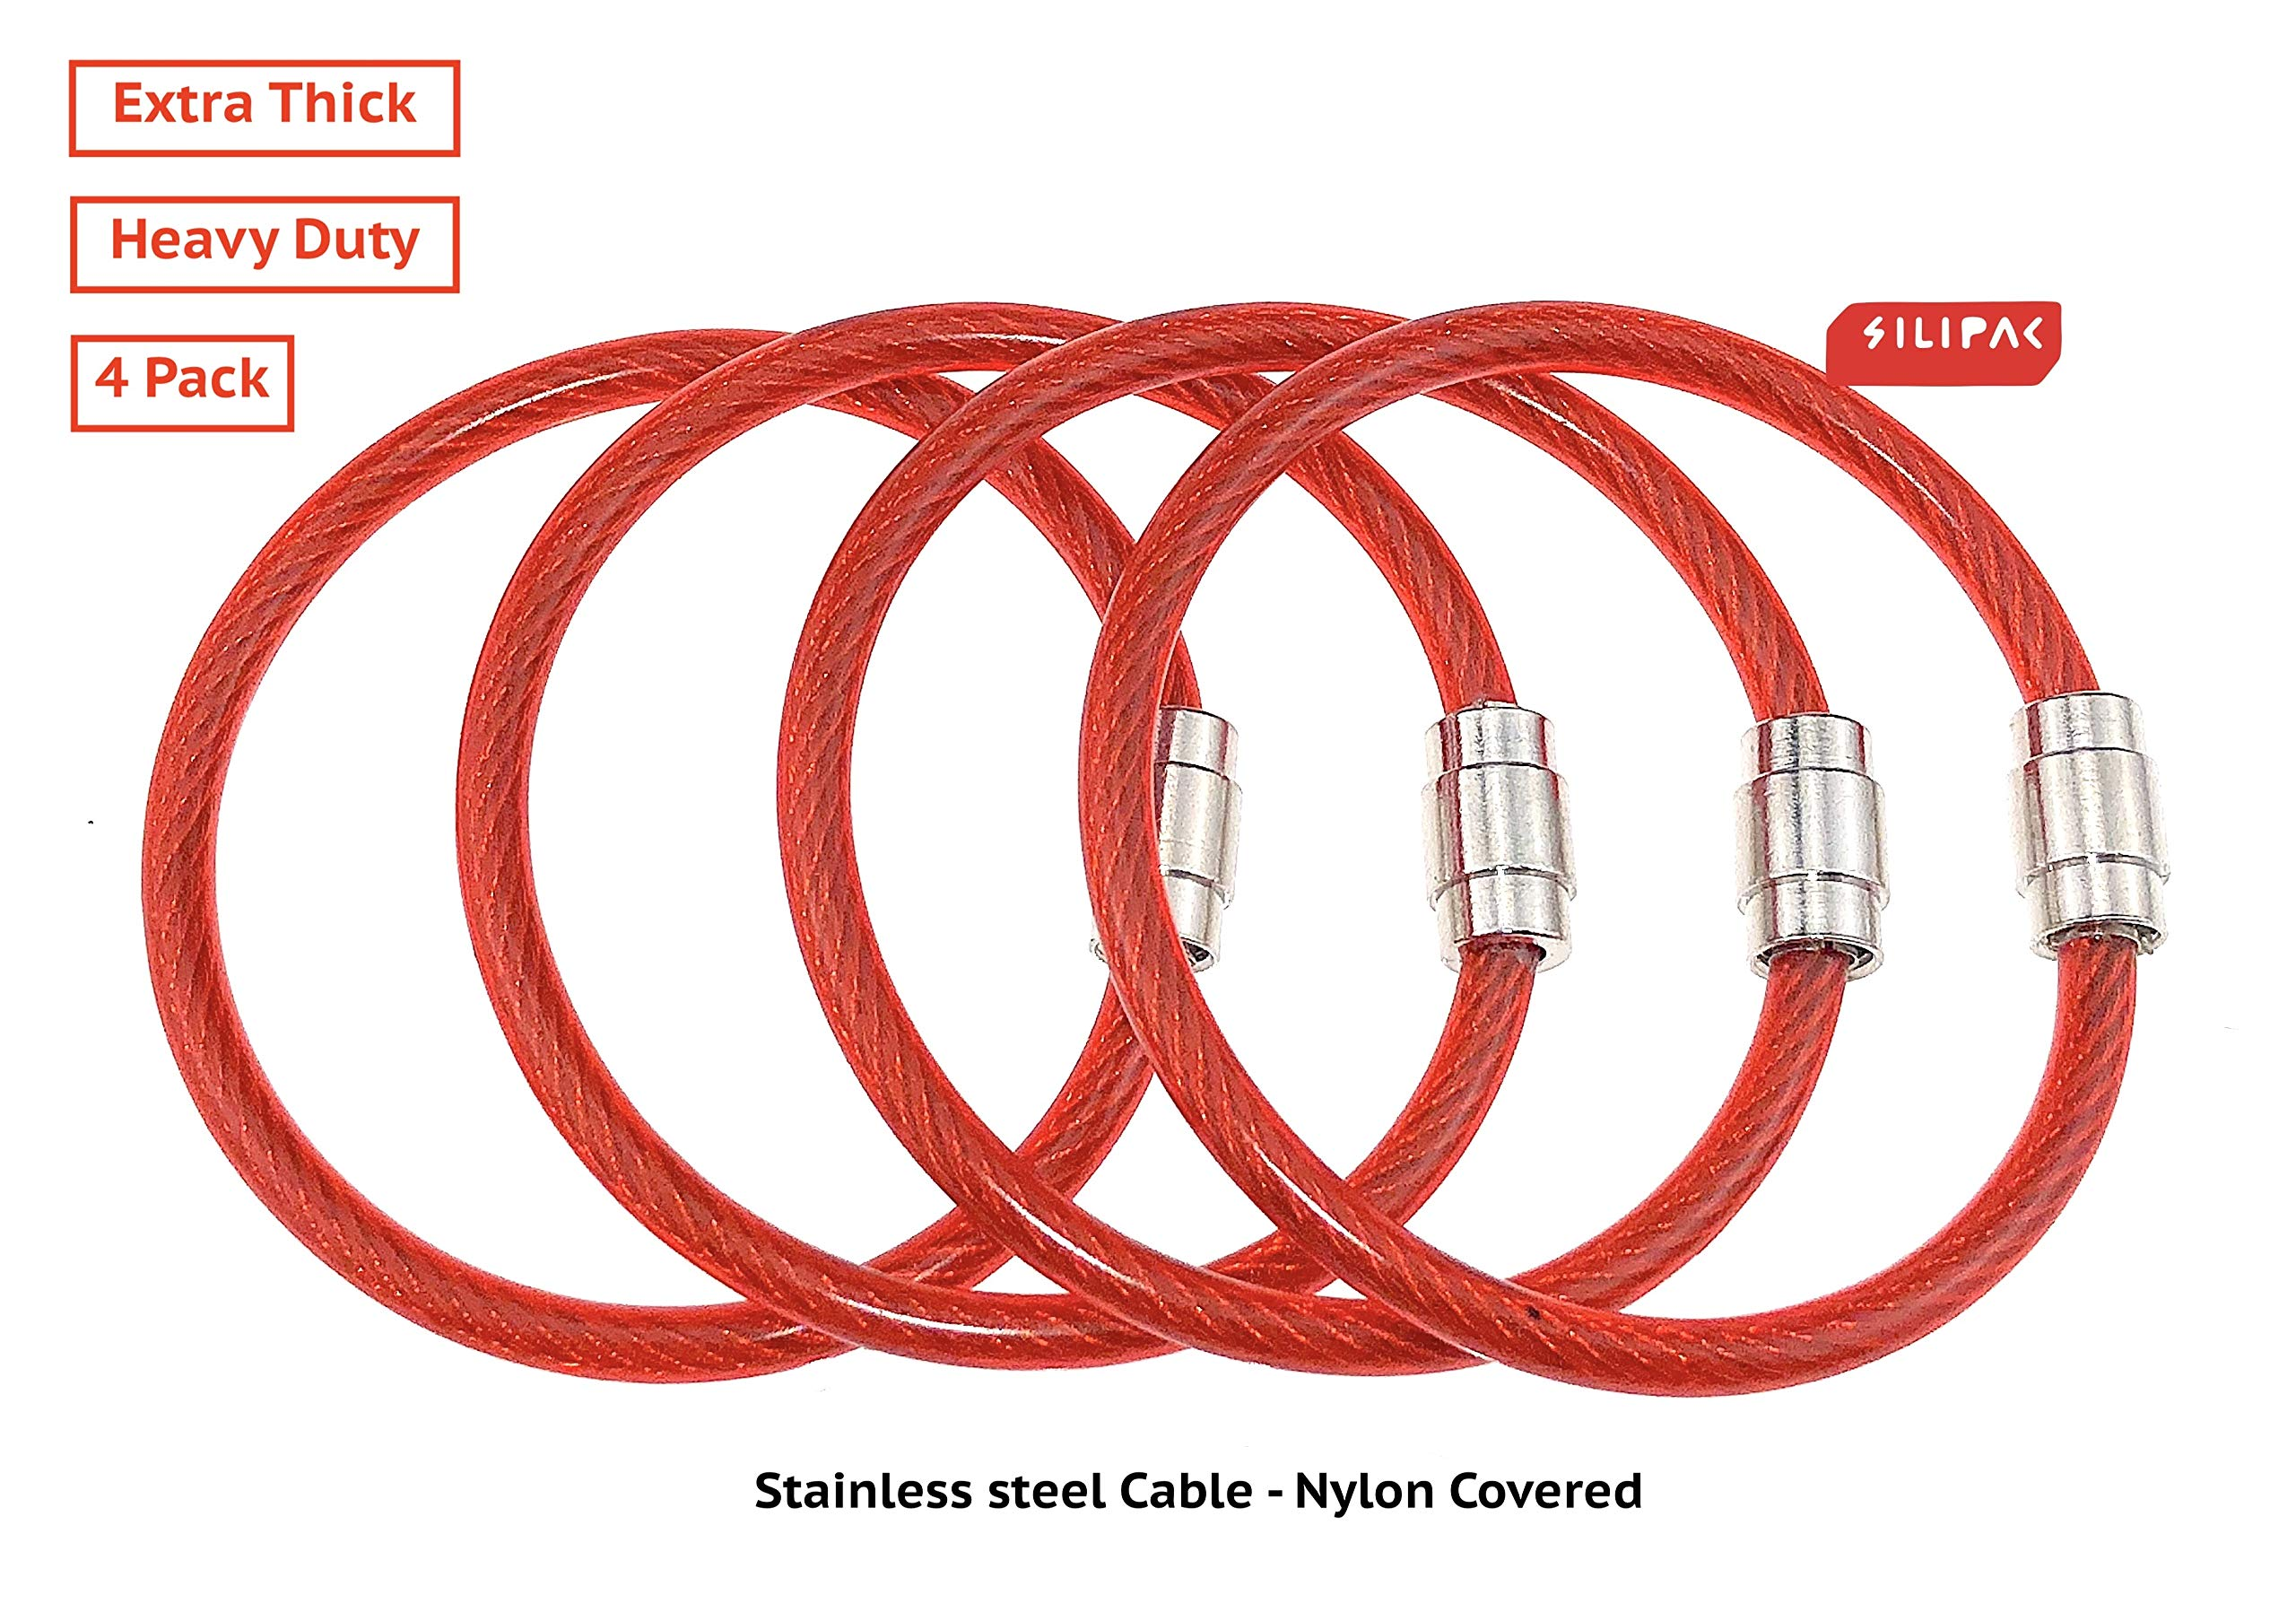 Silipac Extra Thick Heavy Duty Cable Key Ring Tough Stainless Steel Wire Durable Luggage Tag Loops Tags Keychains Car Cables Keys Rings Pack of 4 (Extra Thick 4mm, Red) by Silipac (Image #2)